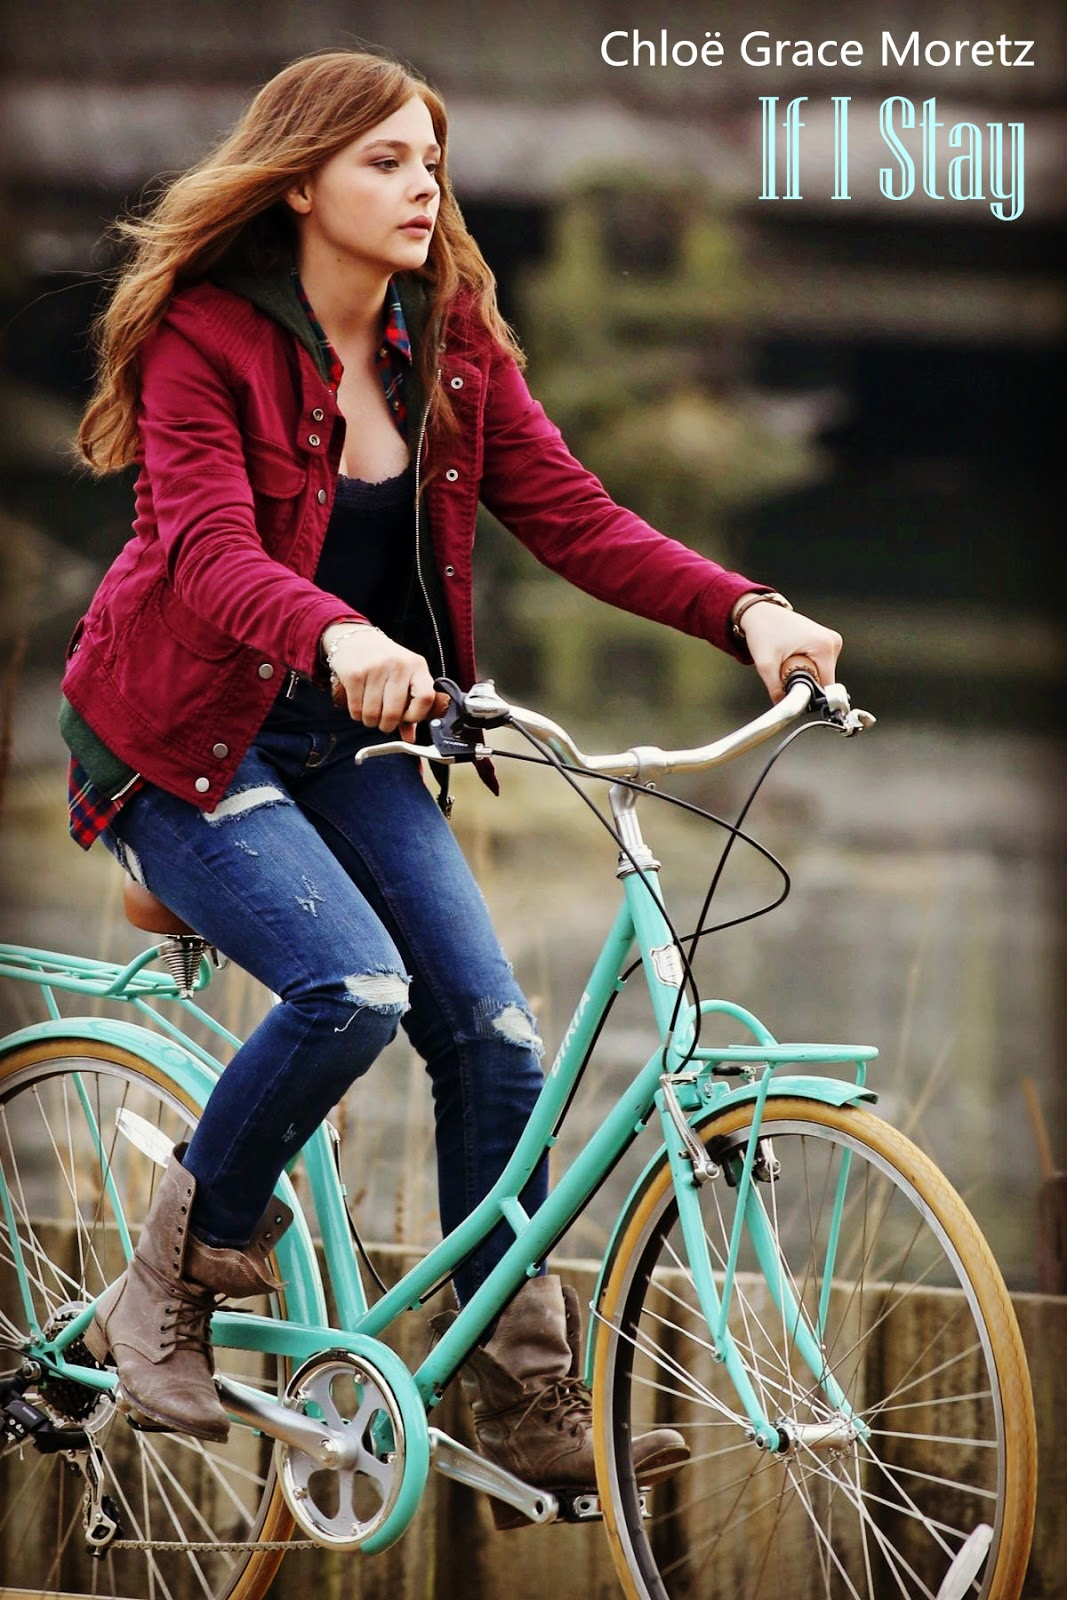 If I Stay Movie Film 2014 - Sinopsis (Chloë Grace Moretz)